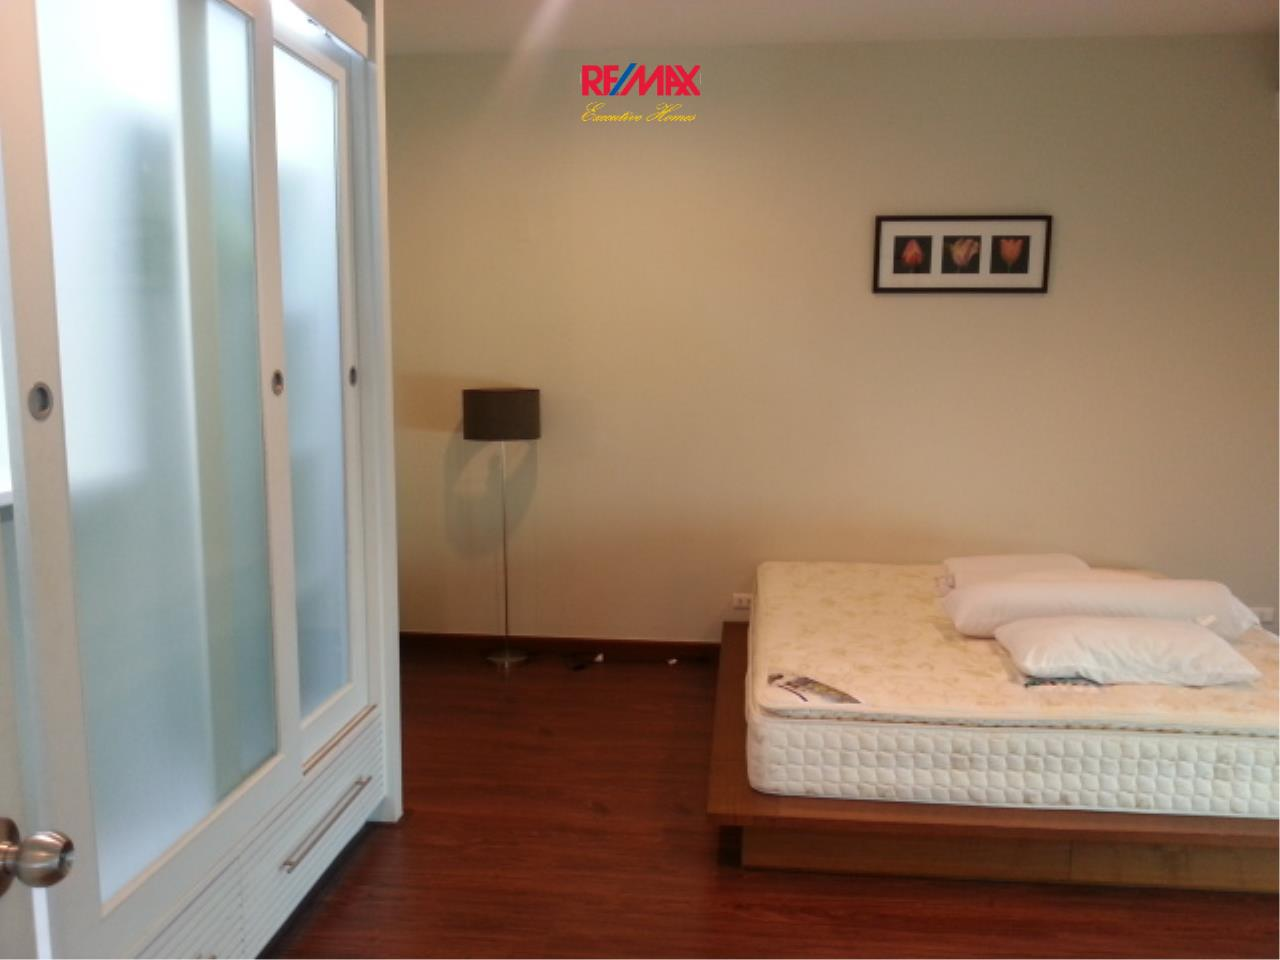 RE/MAX Executive Homes Agency's Nice 3 Bedroom for Rent AP Citismart 5